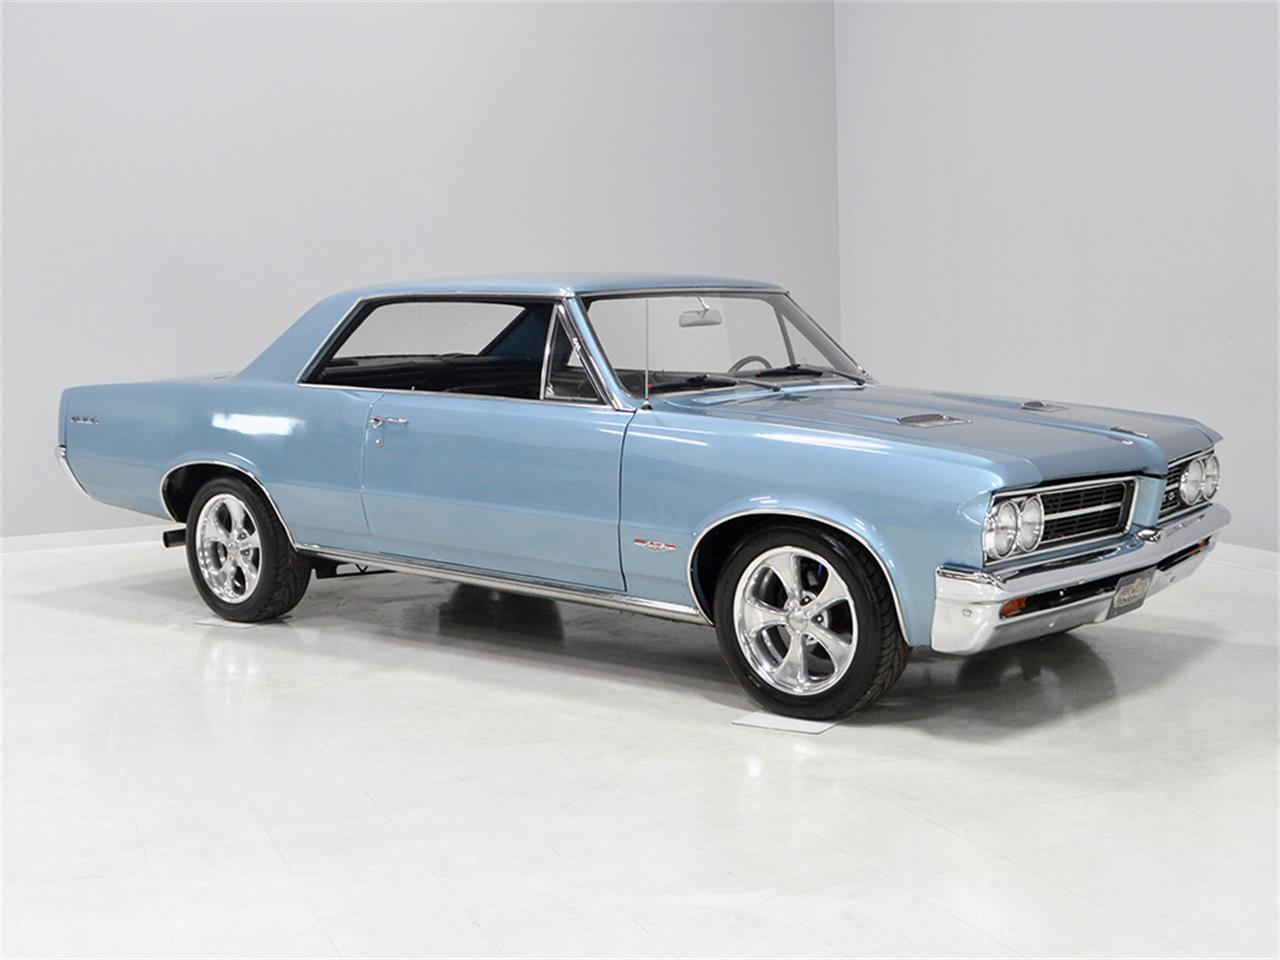 Large Picture of Classic 1964 GTO - $32,900.00 Offered by Harwood Motors, LTD. - MGNK